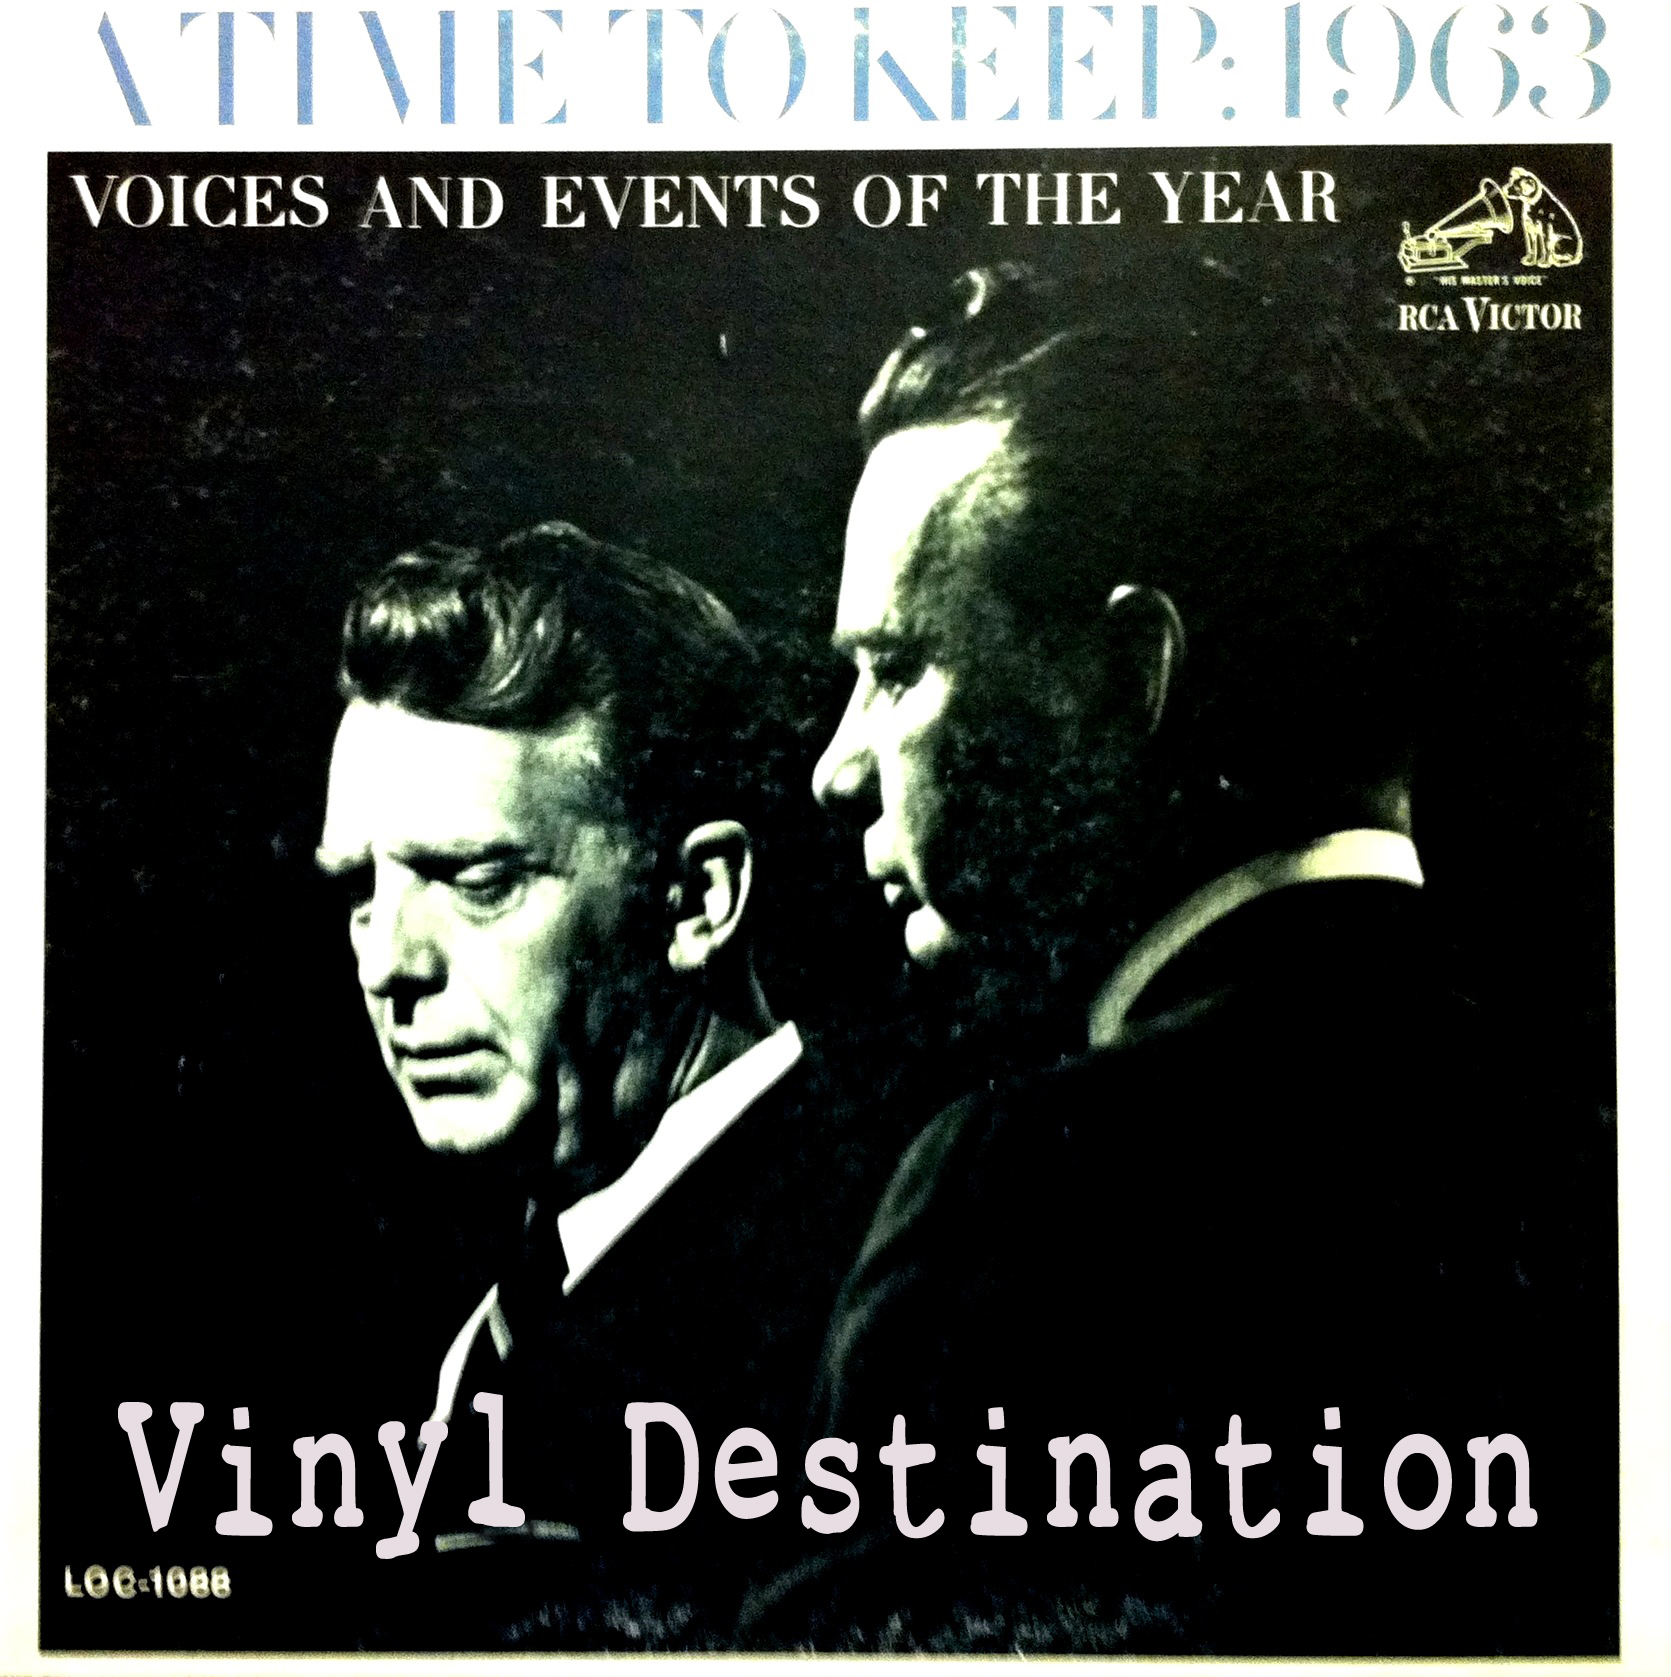 Caption: A Time to Keep: 1963 - Voices and Events of the Year, Credit: RCA Victor